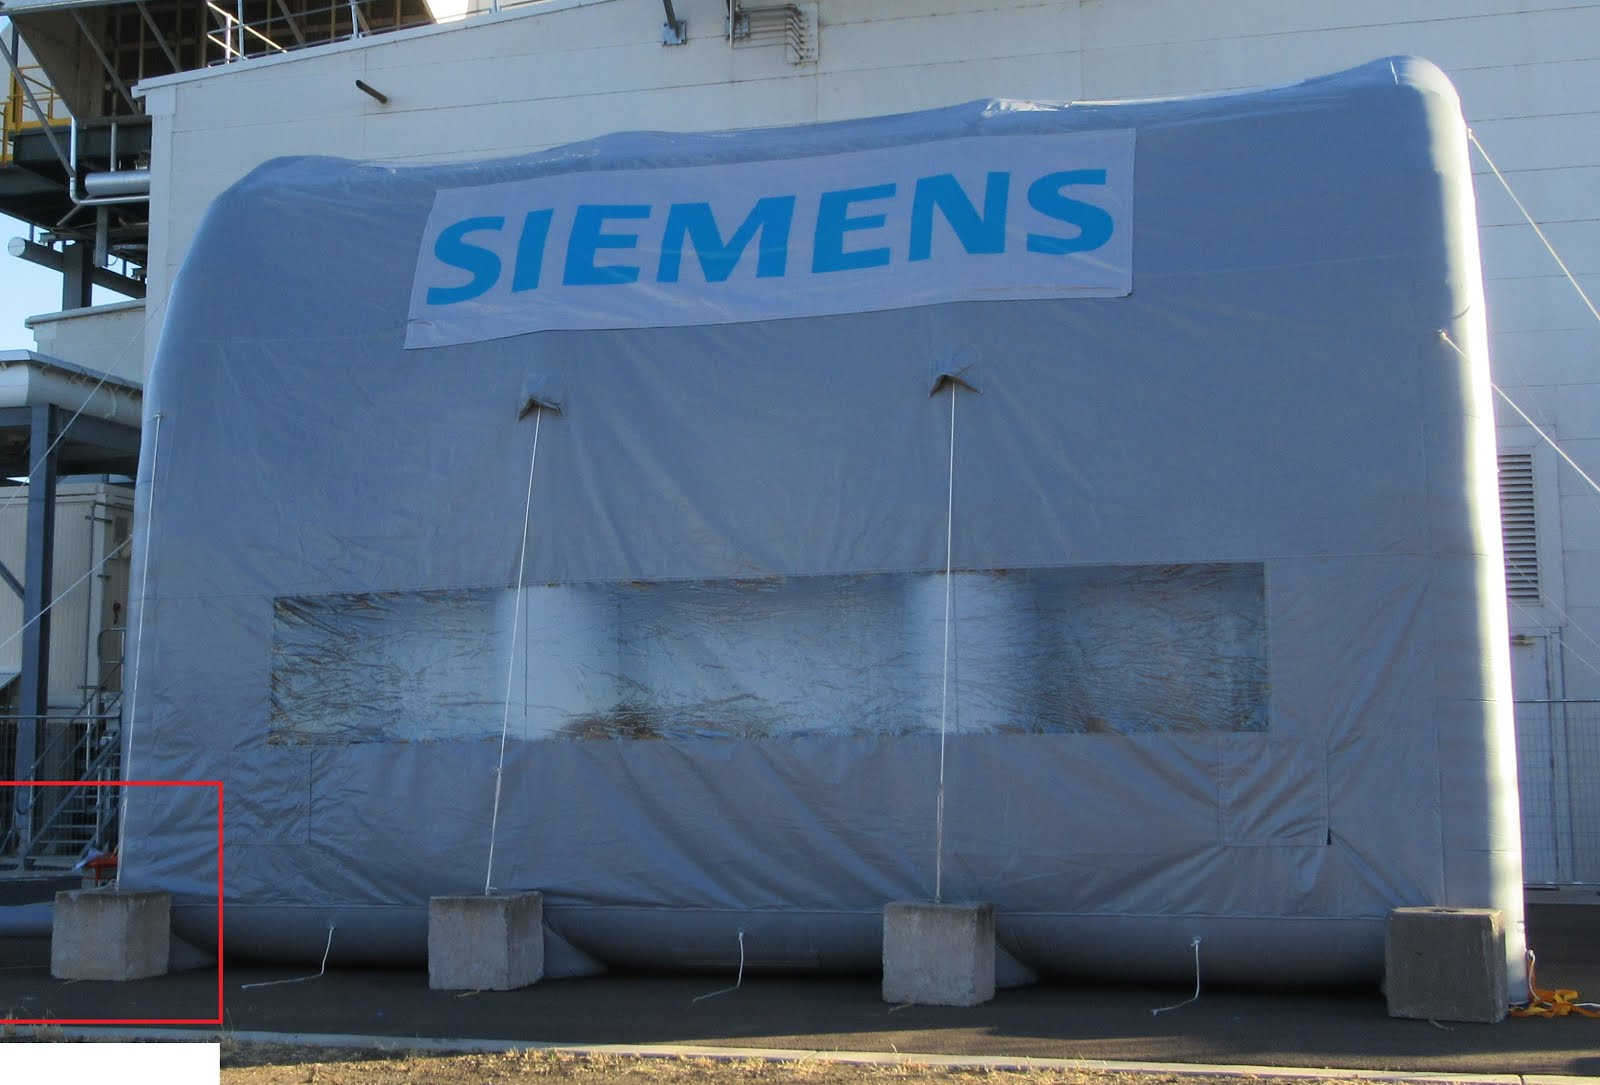 Siemens Inflatable Blasting Shelter - Case Study